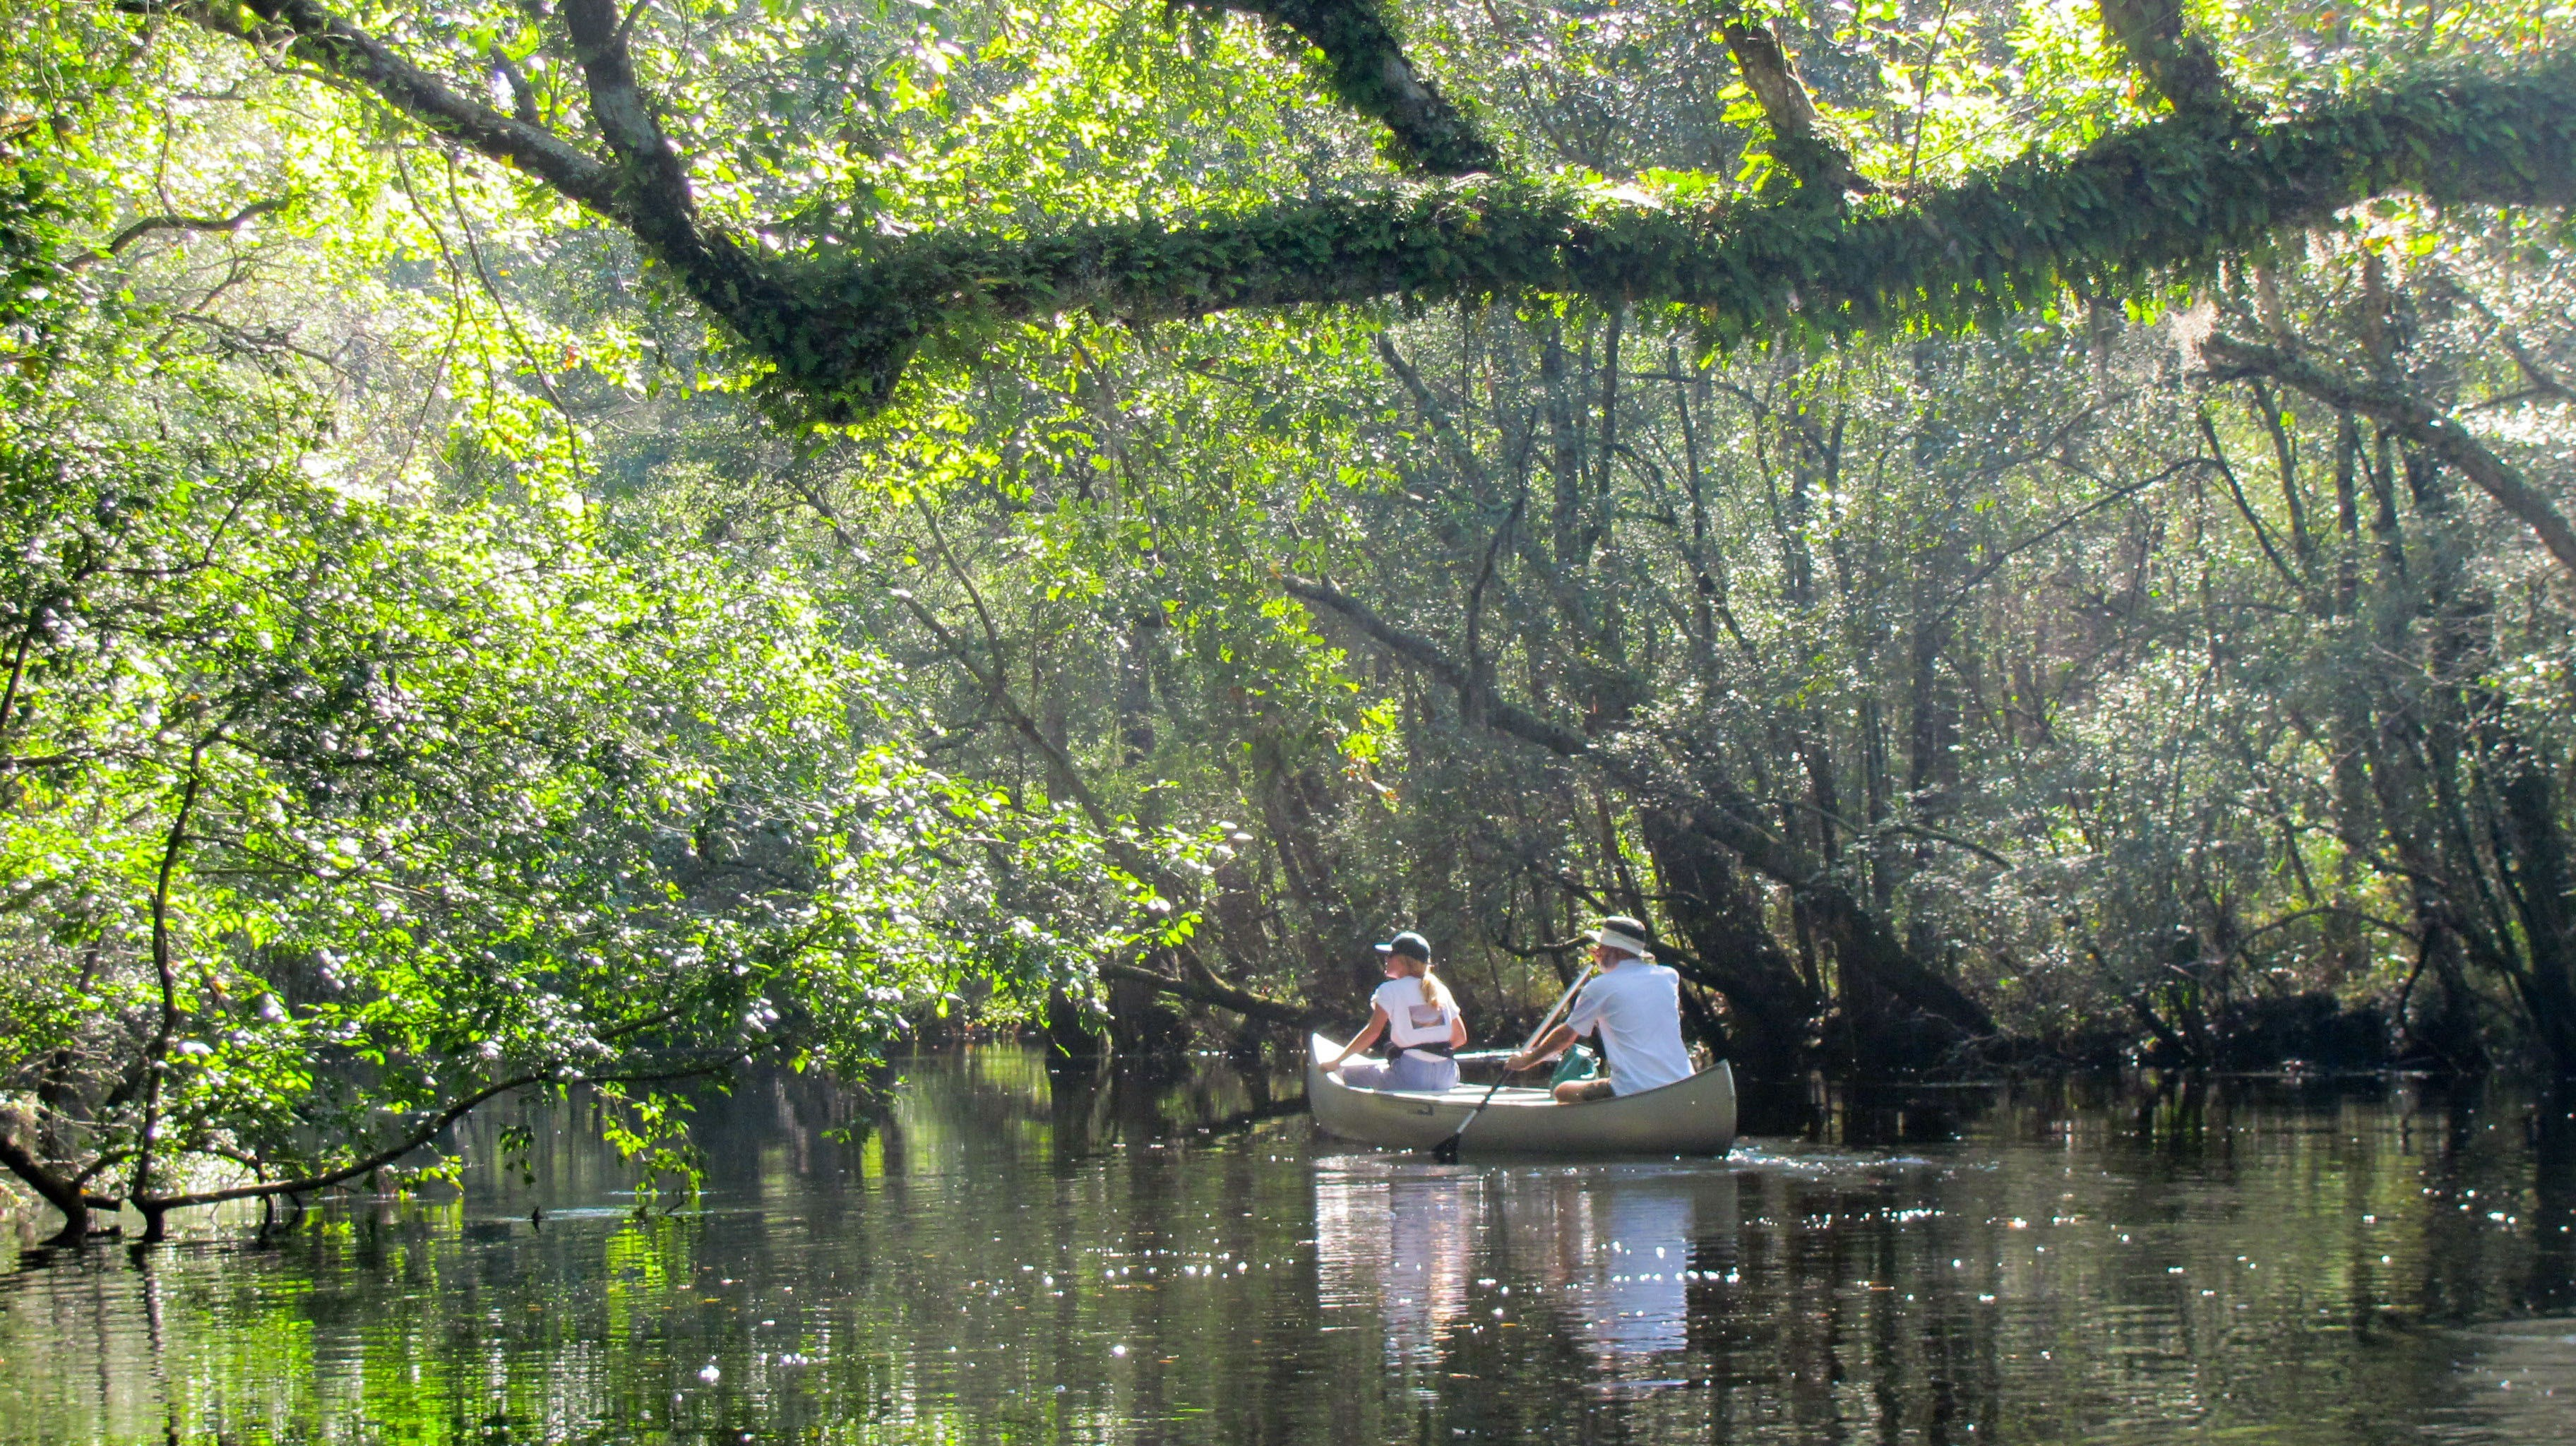 Paddlers enjoy the Waccamaw River.